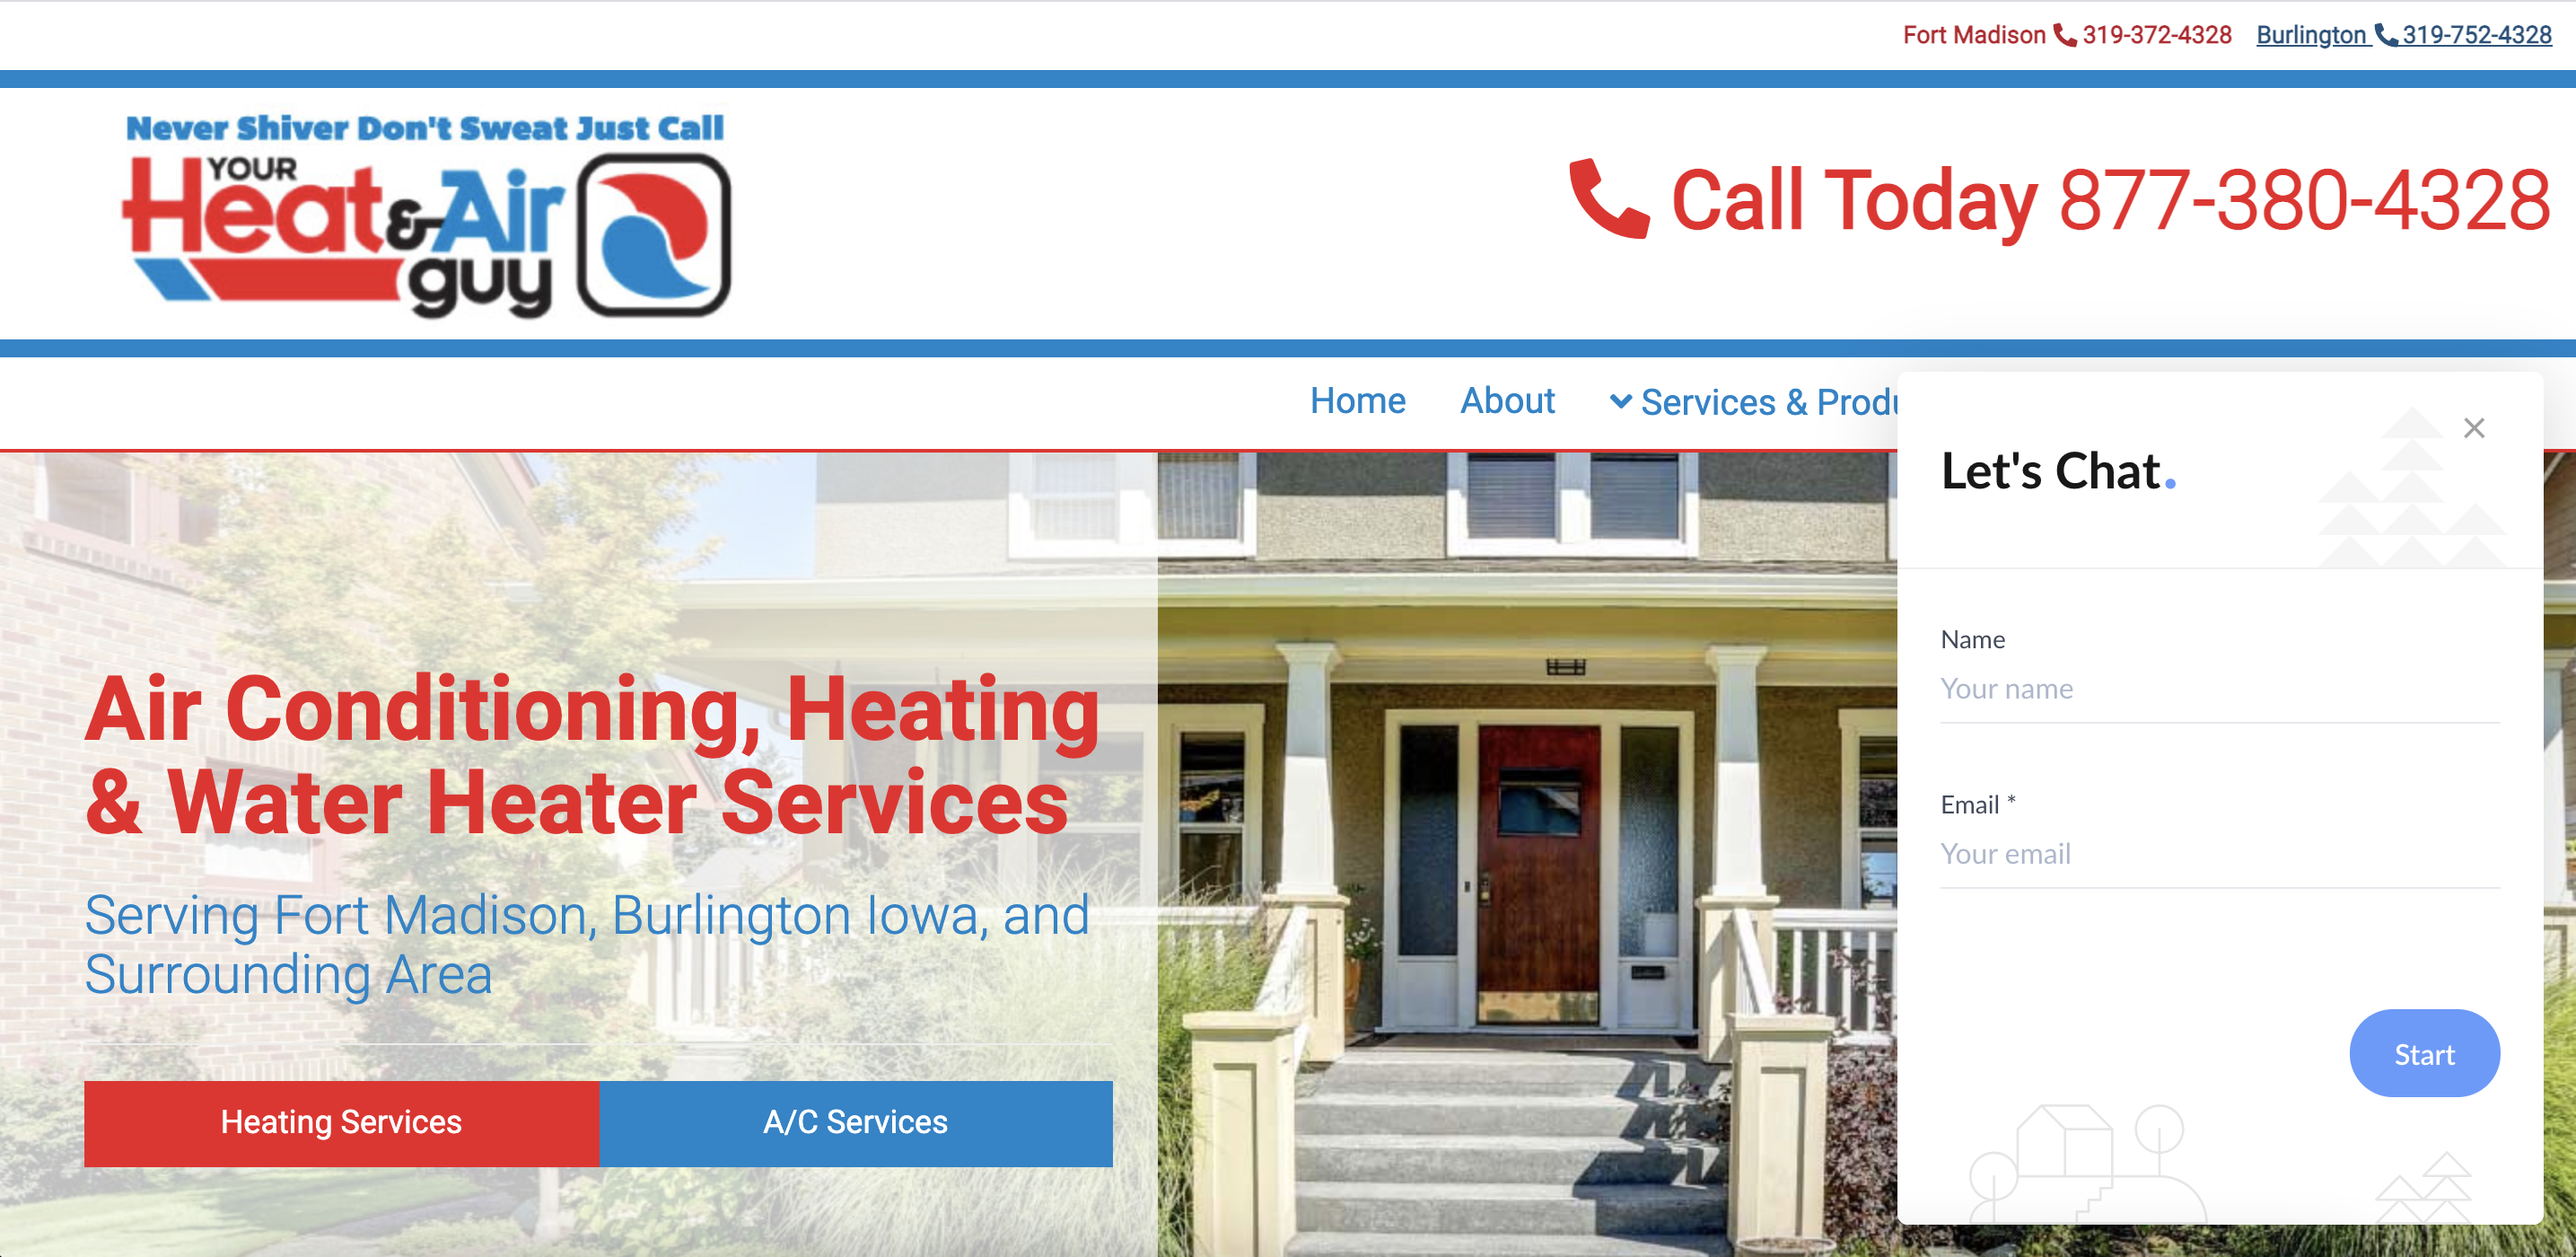 live chat lead form on HVAC site